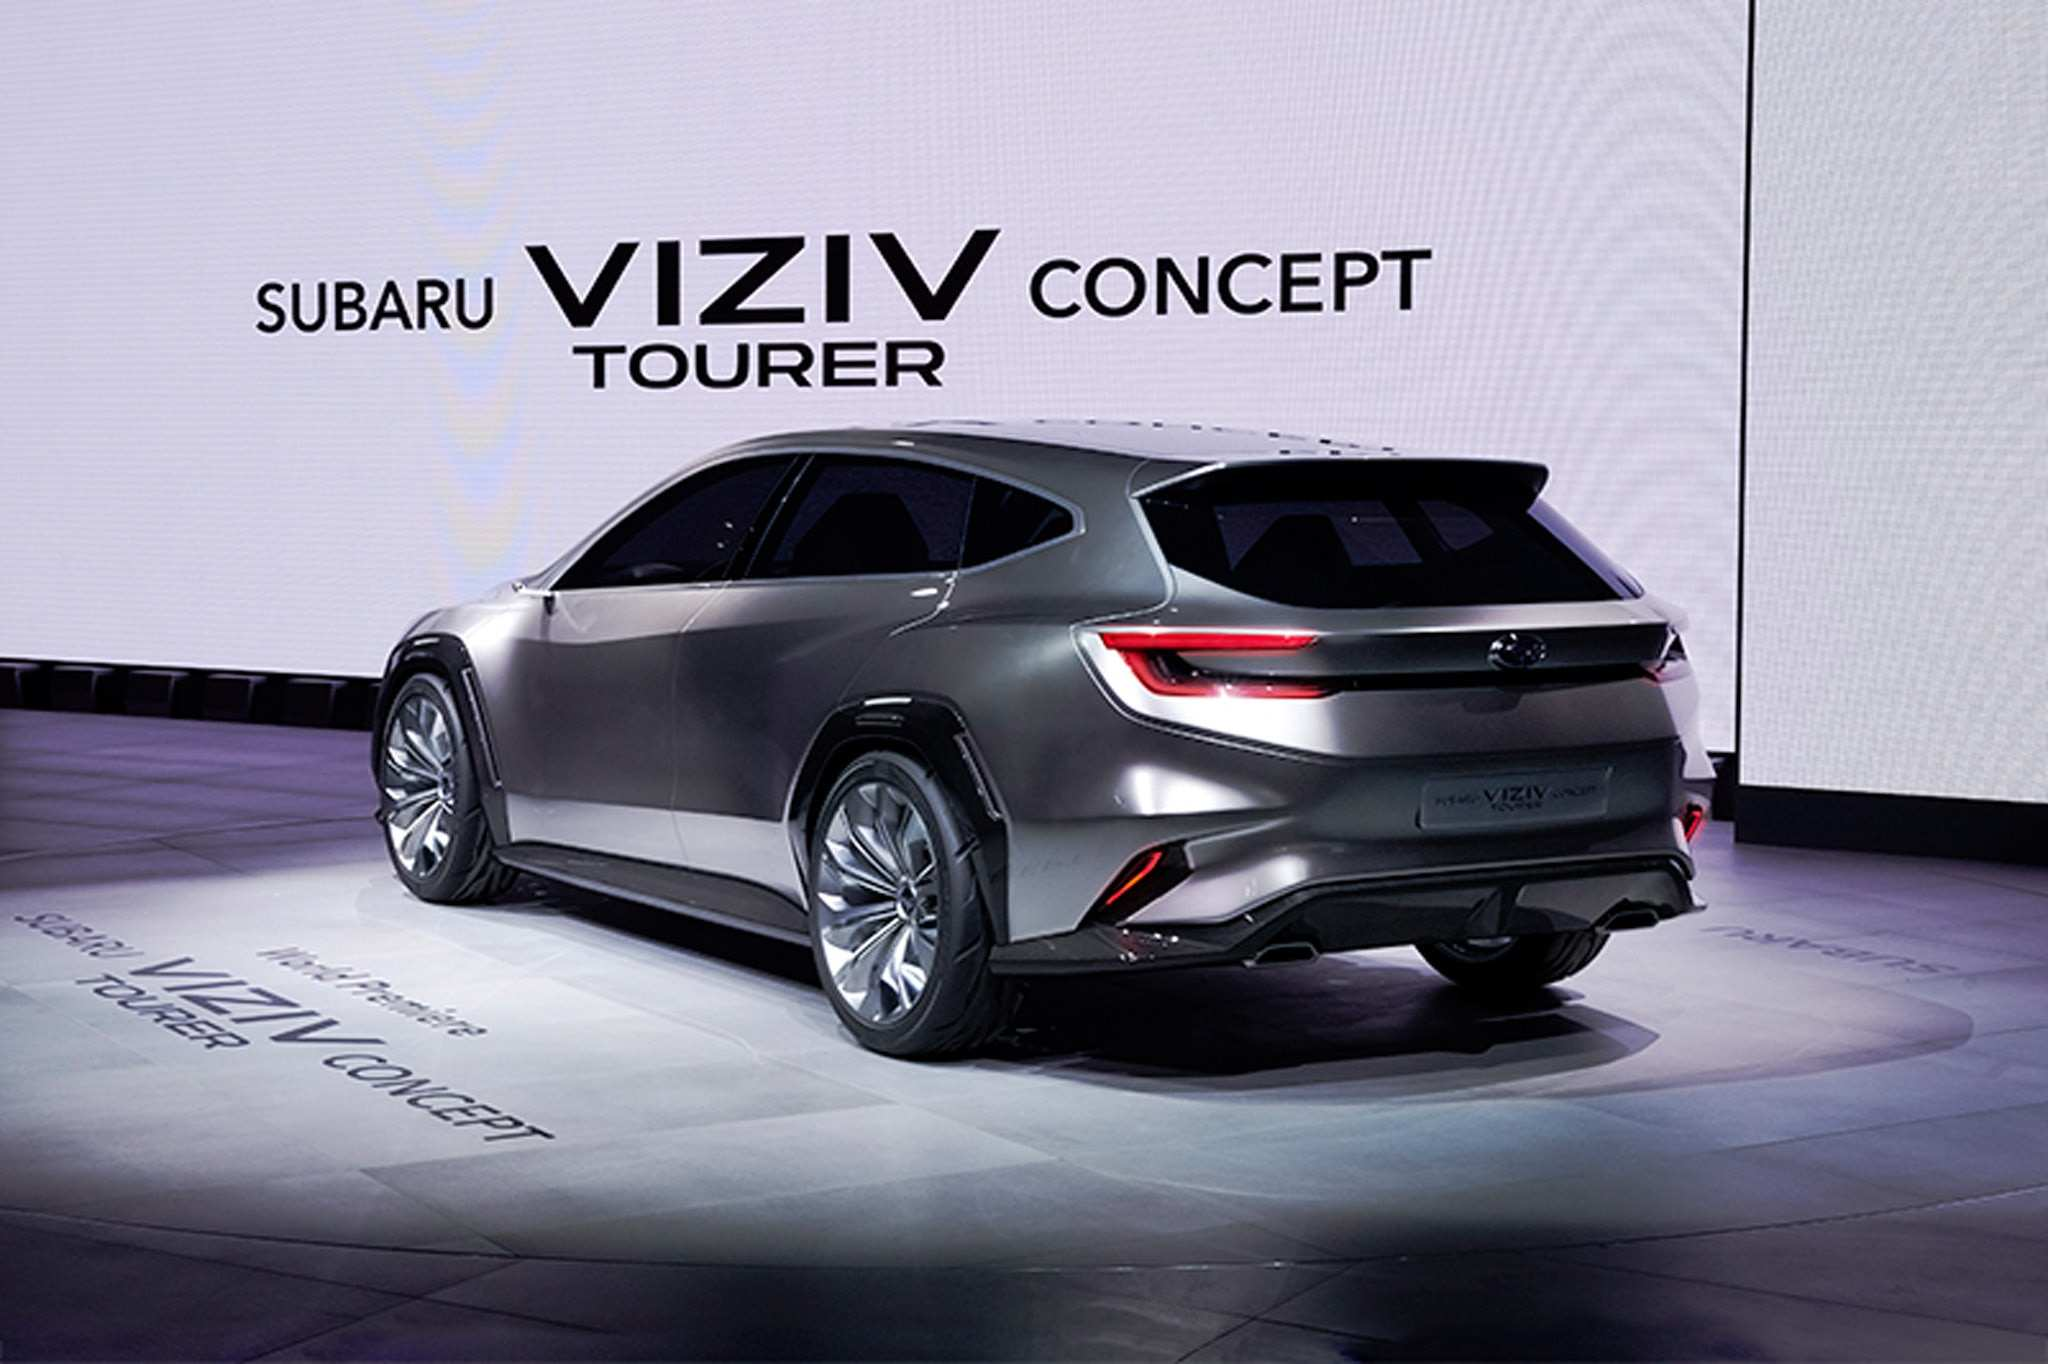 78 The Best Subaru Viziv Tourer 2020 Style